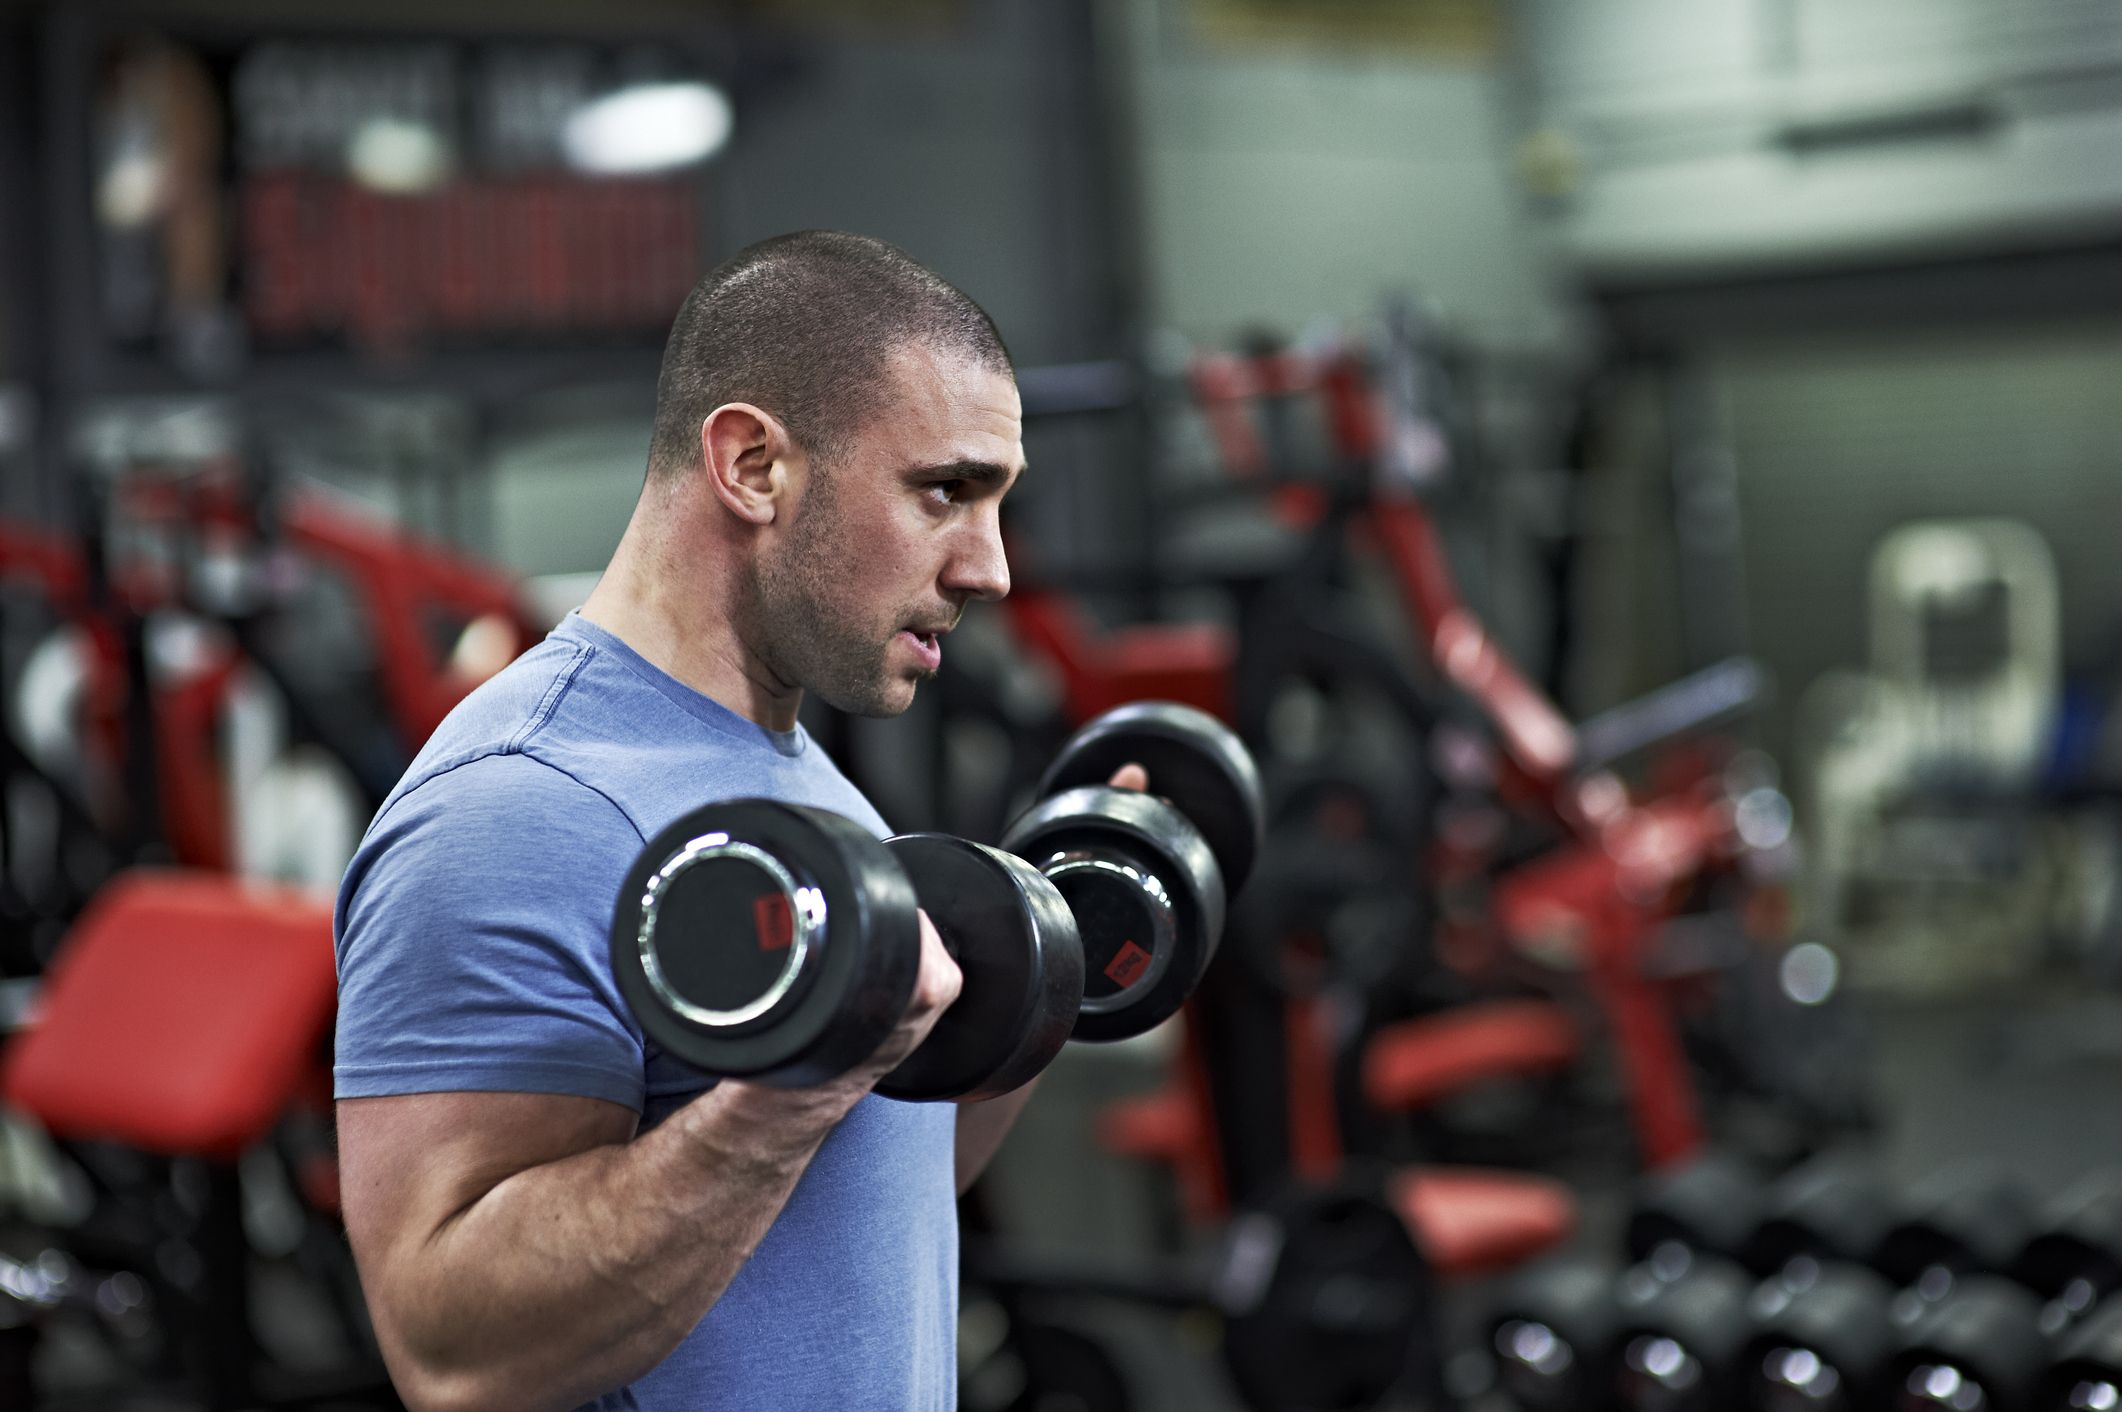 This Simple Dumbbell Workout Will Build Your Arms and Back